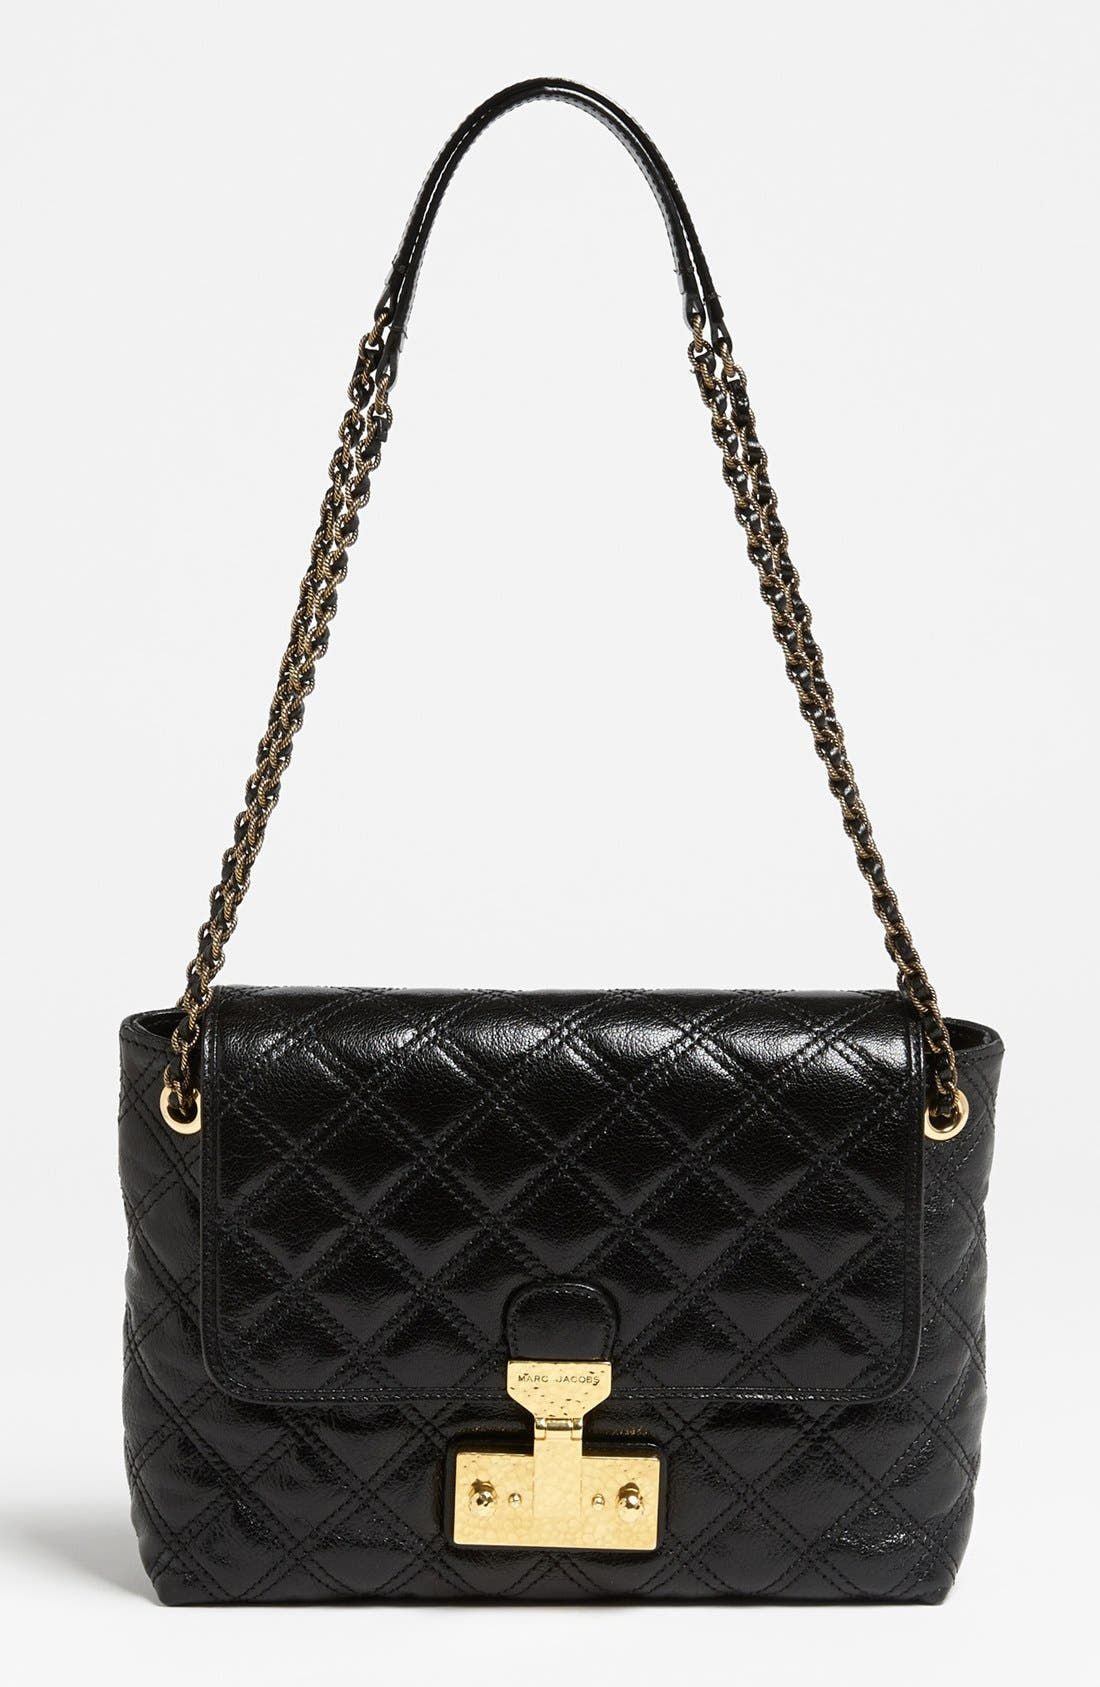 Main Image - MARC JACOBS 'Baroque Single - Large' Leather Shoulder Bag